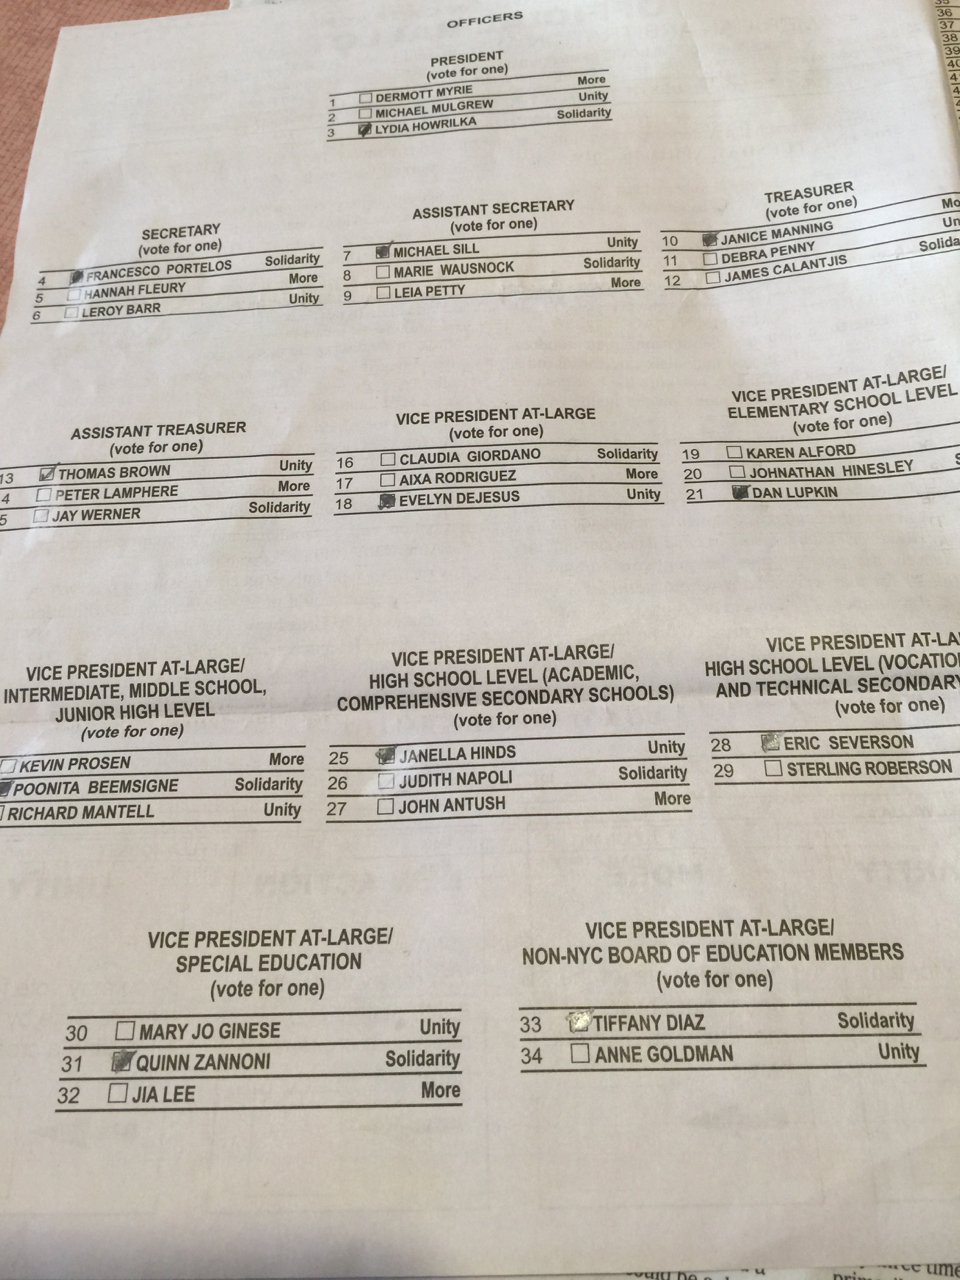 Ed Notes Online: My UFT Election Choices: Duke Breaks